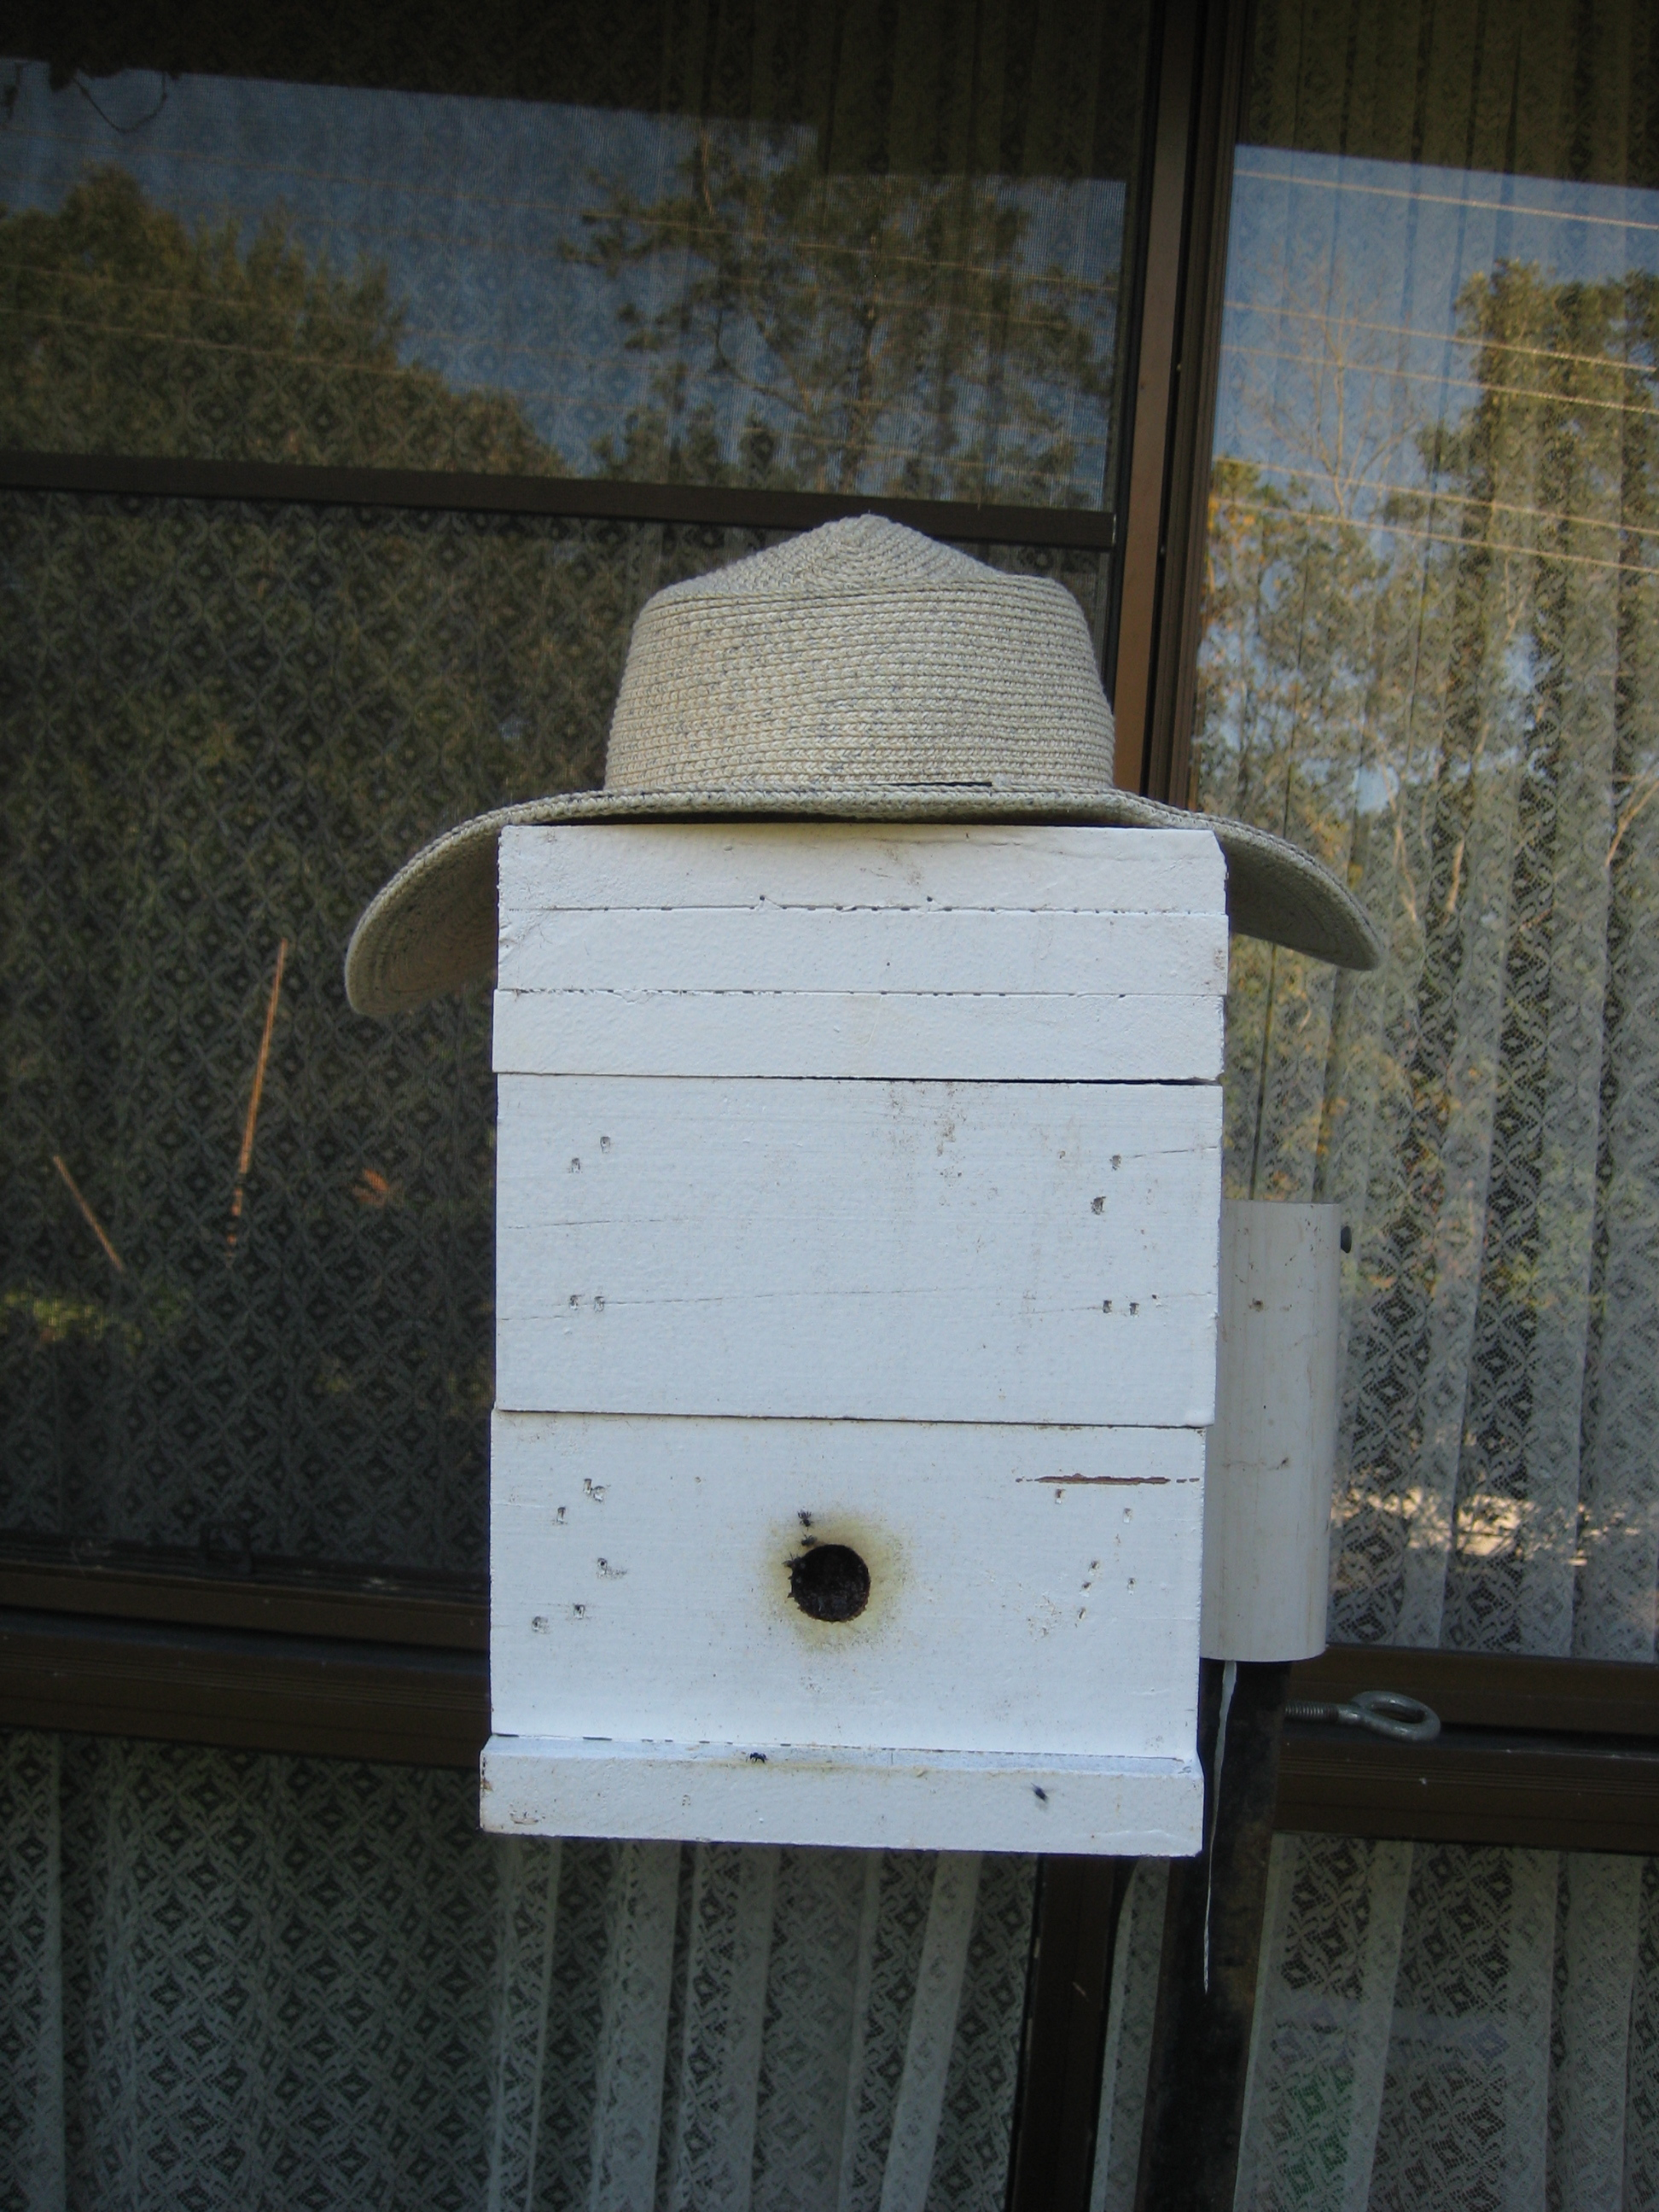 photo of my hive outside my office – the hive design is an OATH